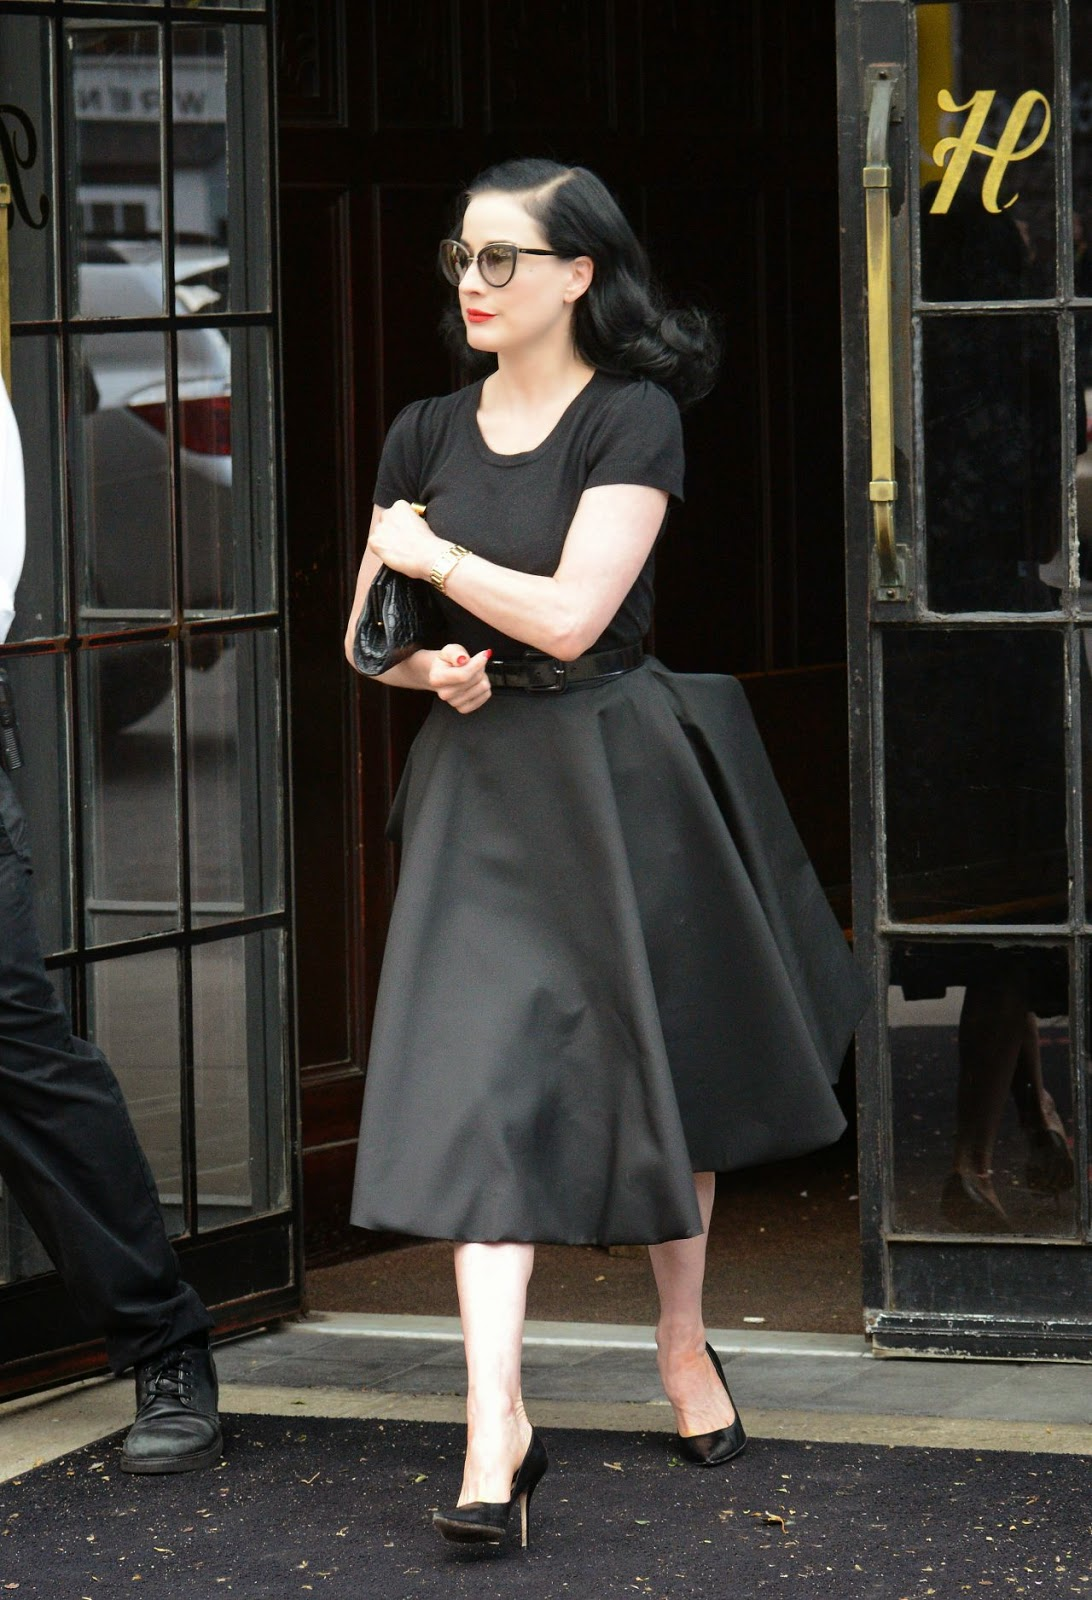 Andrew Blake Dita Von Teese dita von teese in an all black look out and about in ny